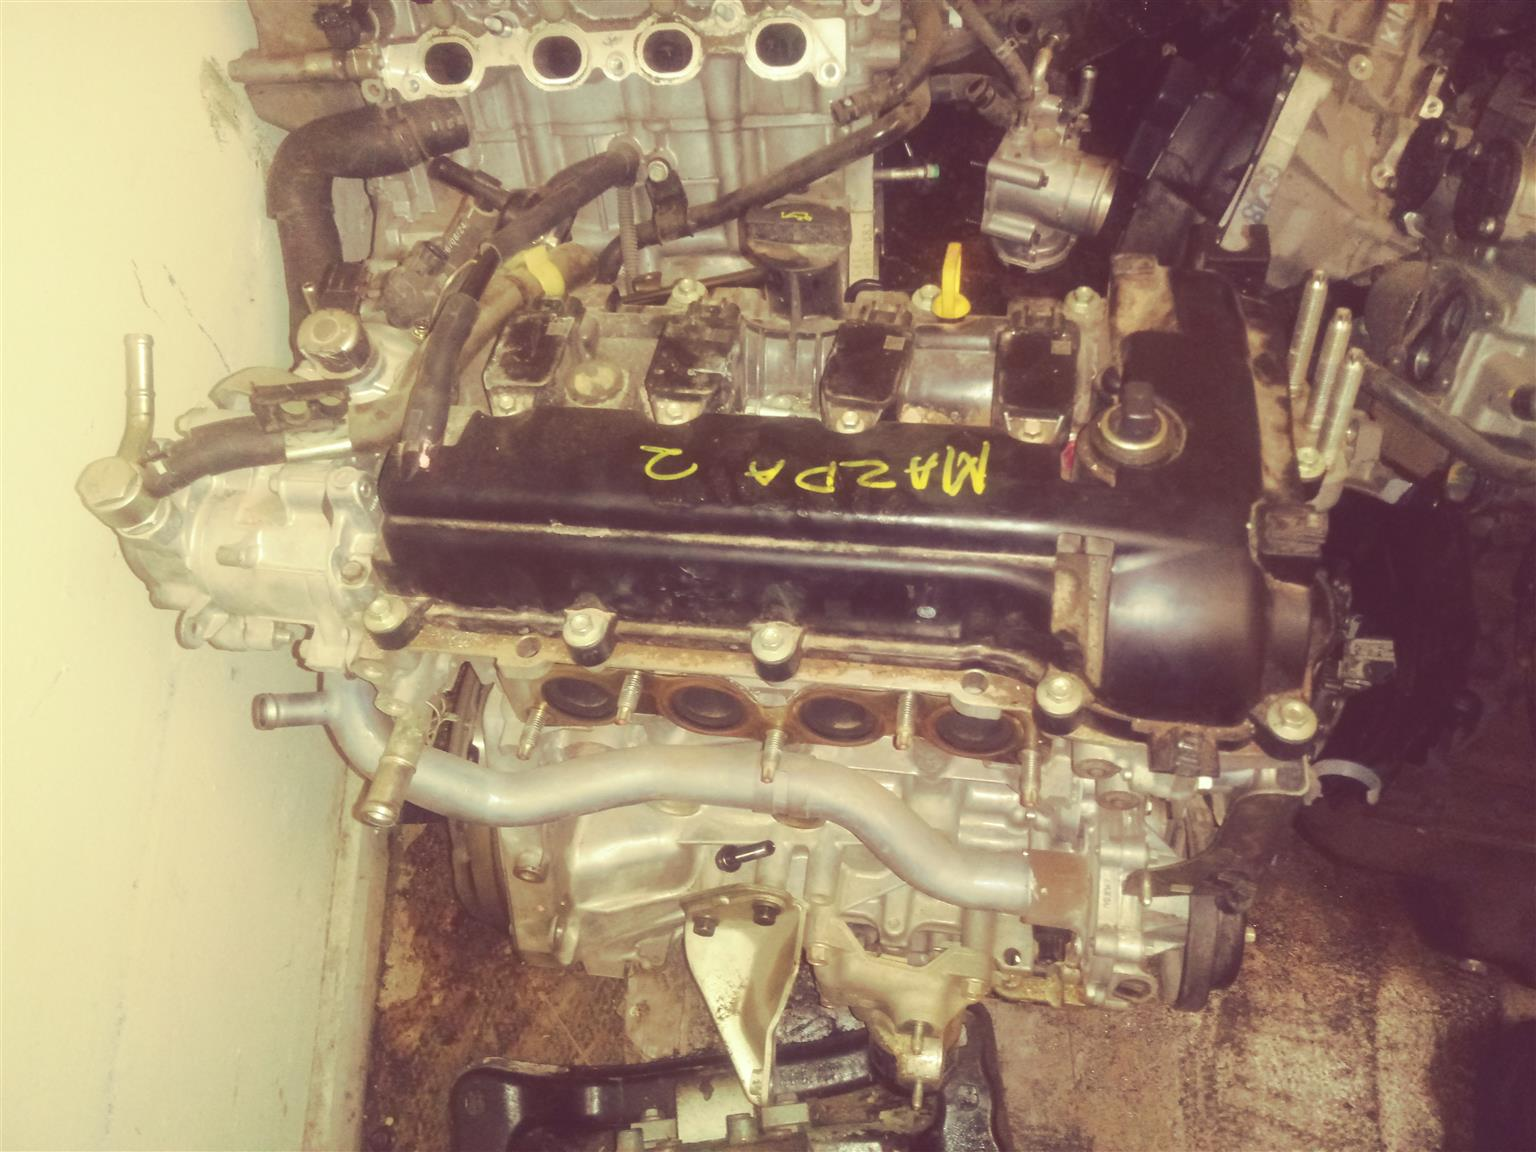 ENGINES FOR SALE G4LA,G4FG,CHEV CRUZE,CHEV AVEO F16 AND MANY MORE IN